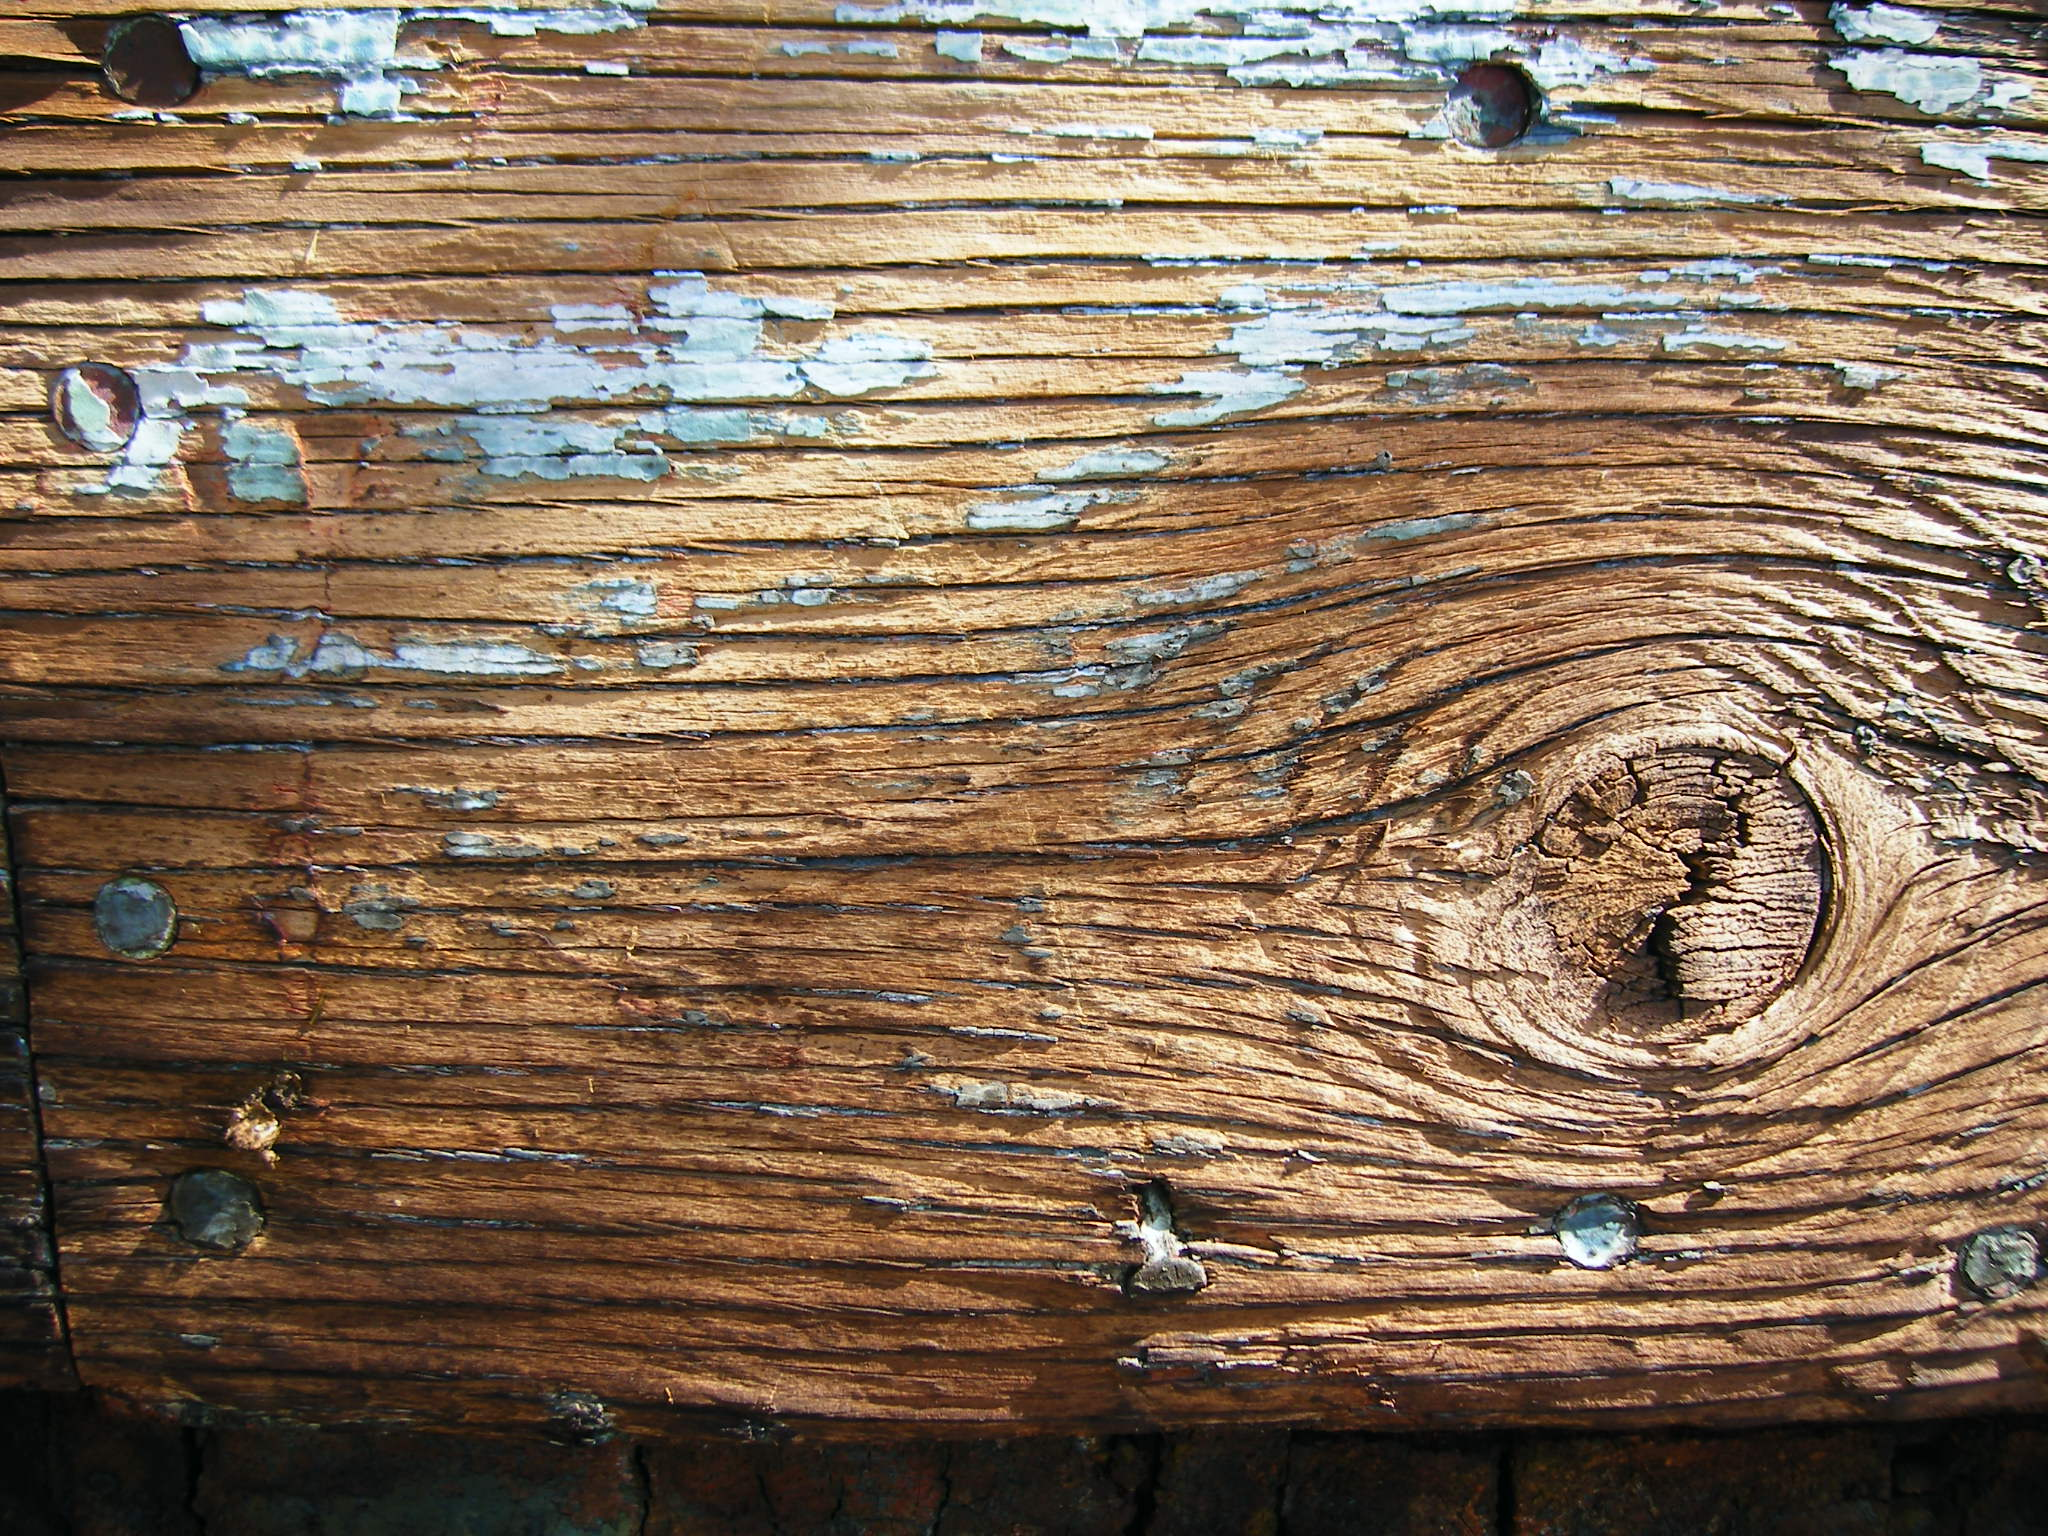 Wood-Grain-Photo 2.jpg